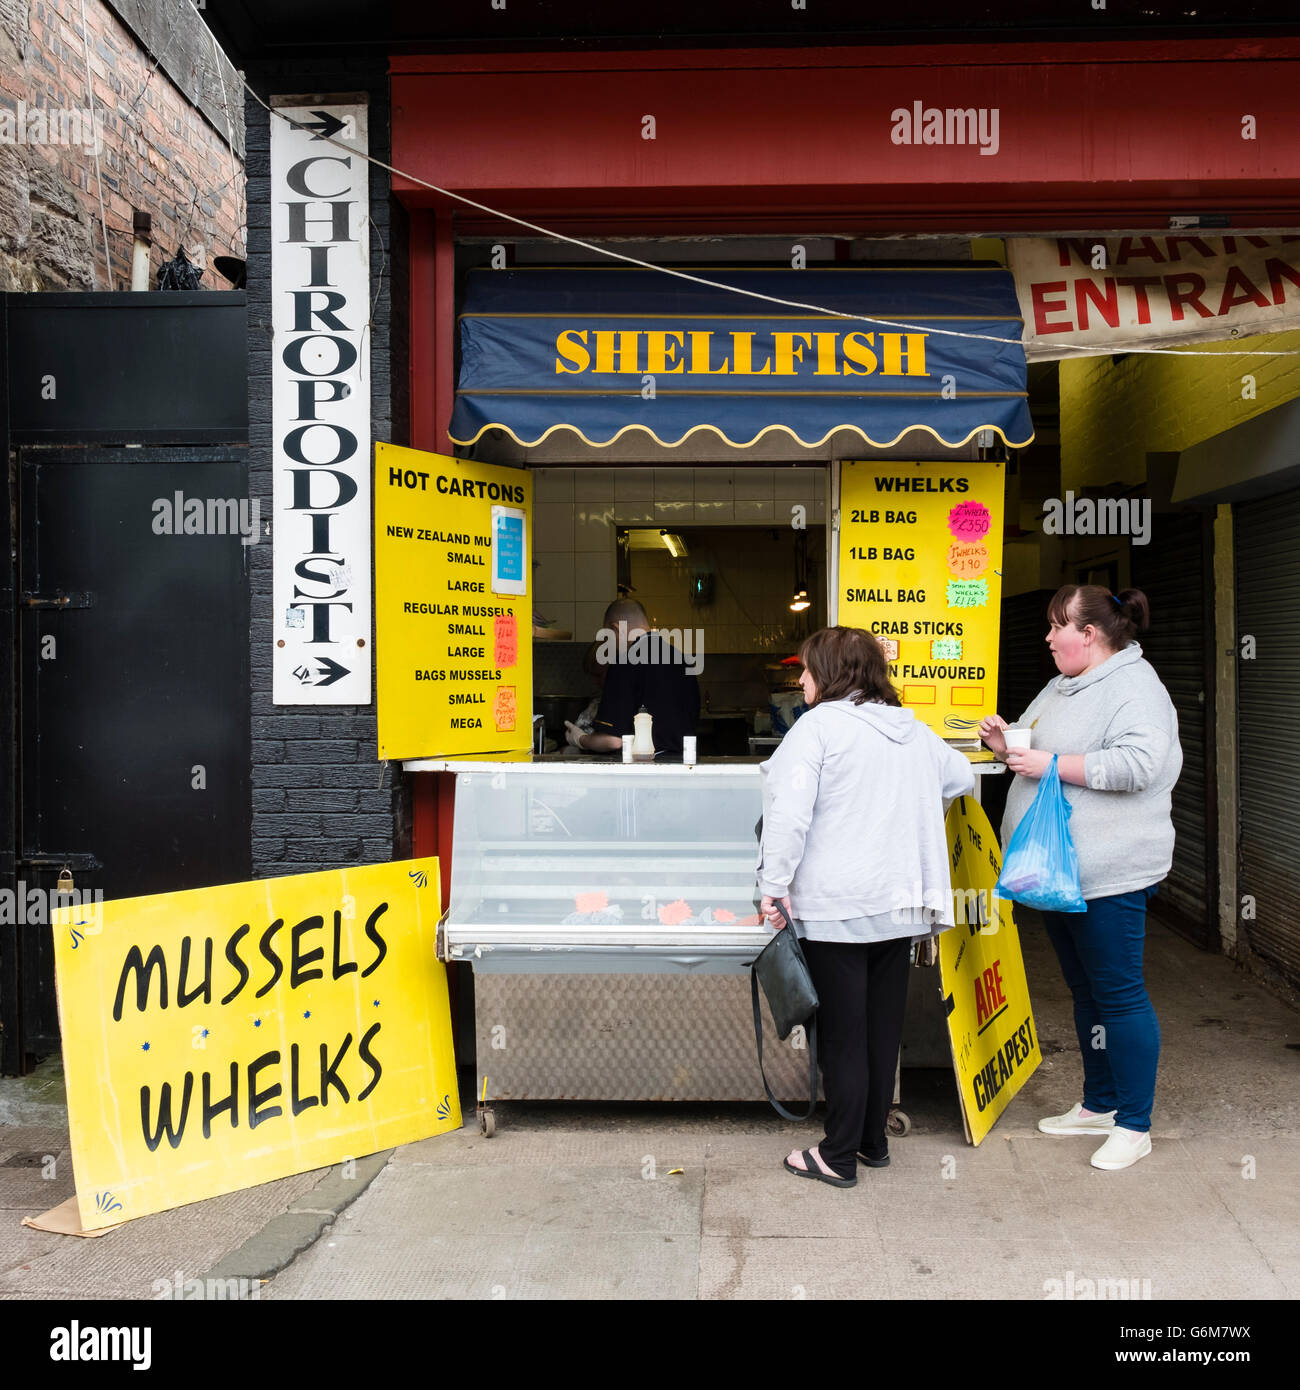 Small seafood kiosk selling shellfish at Barras market in Gallowgate Glasgow, United Kingdom - Stock Image